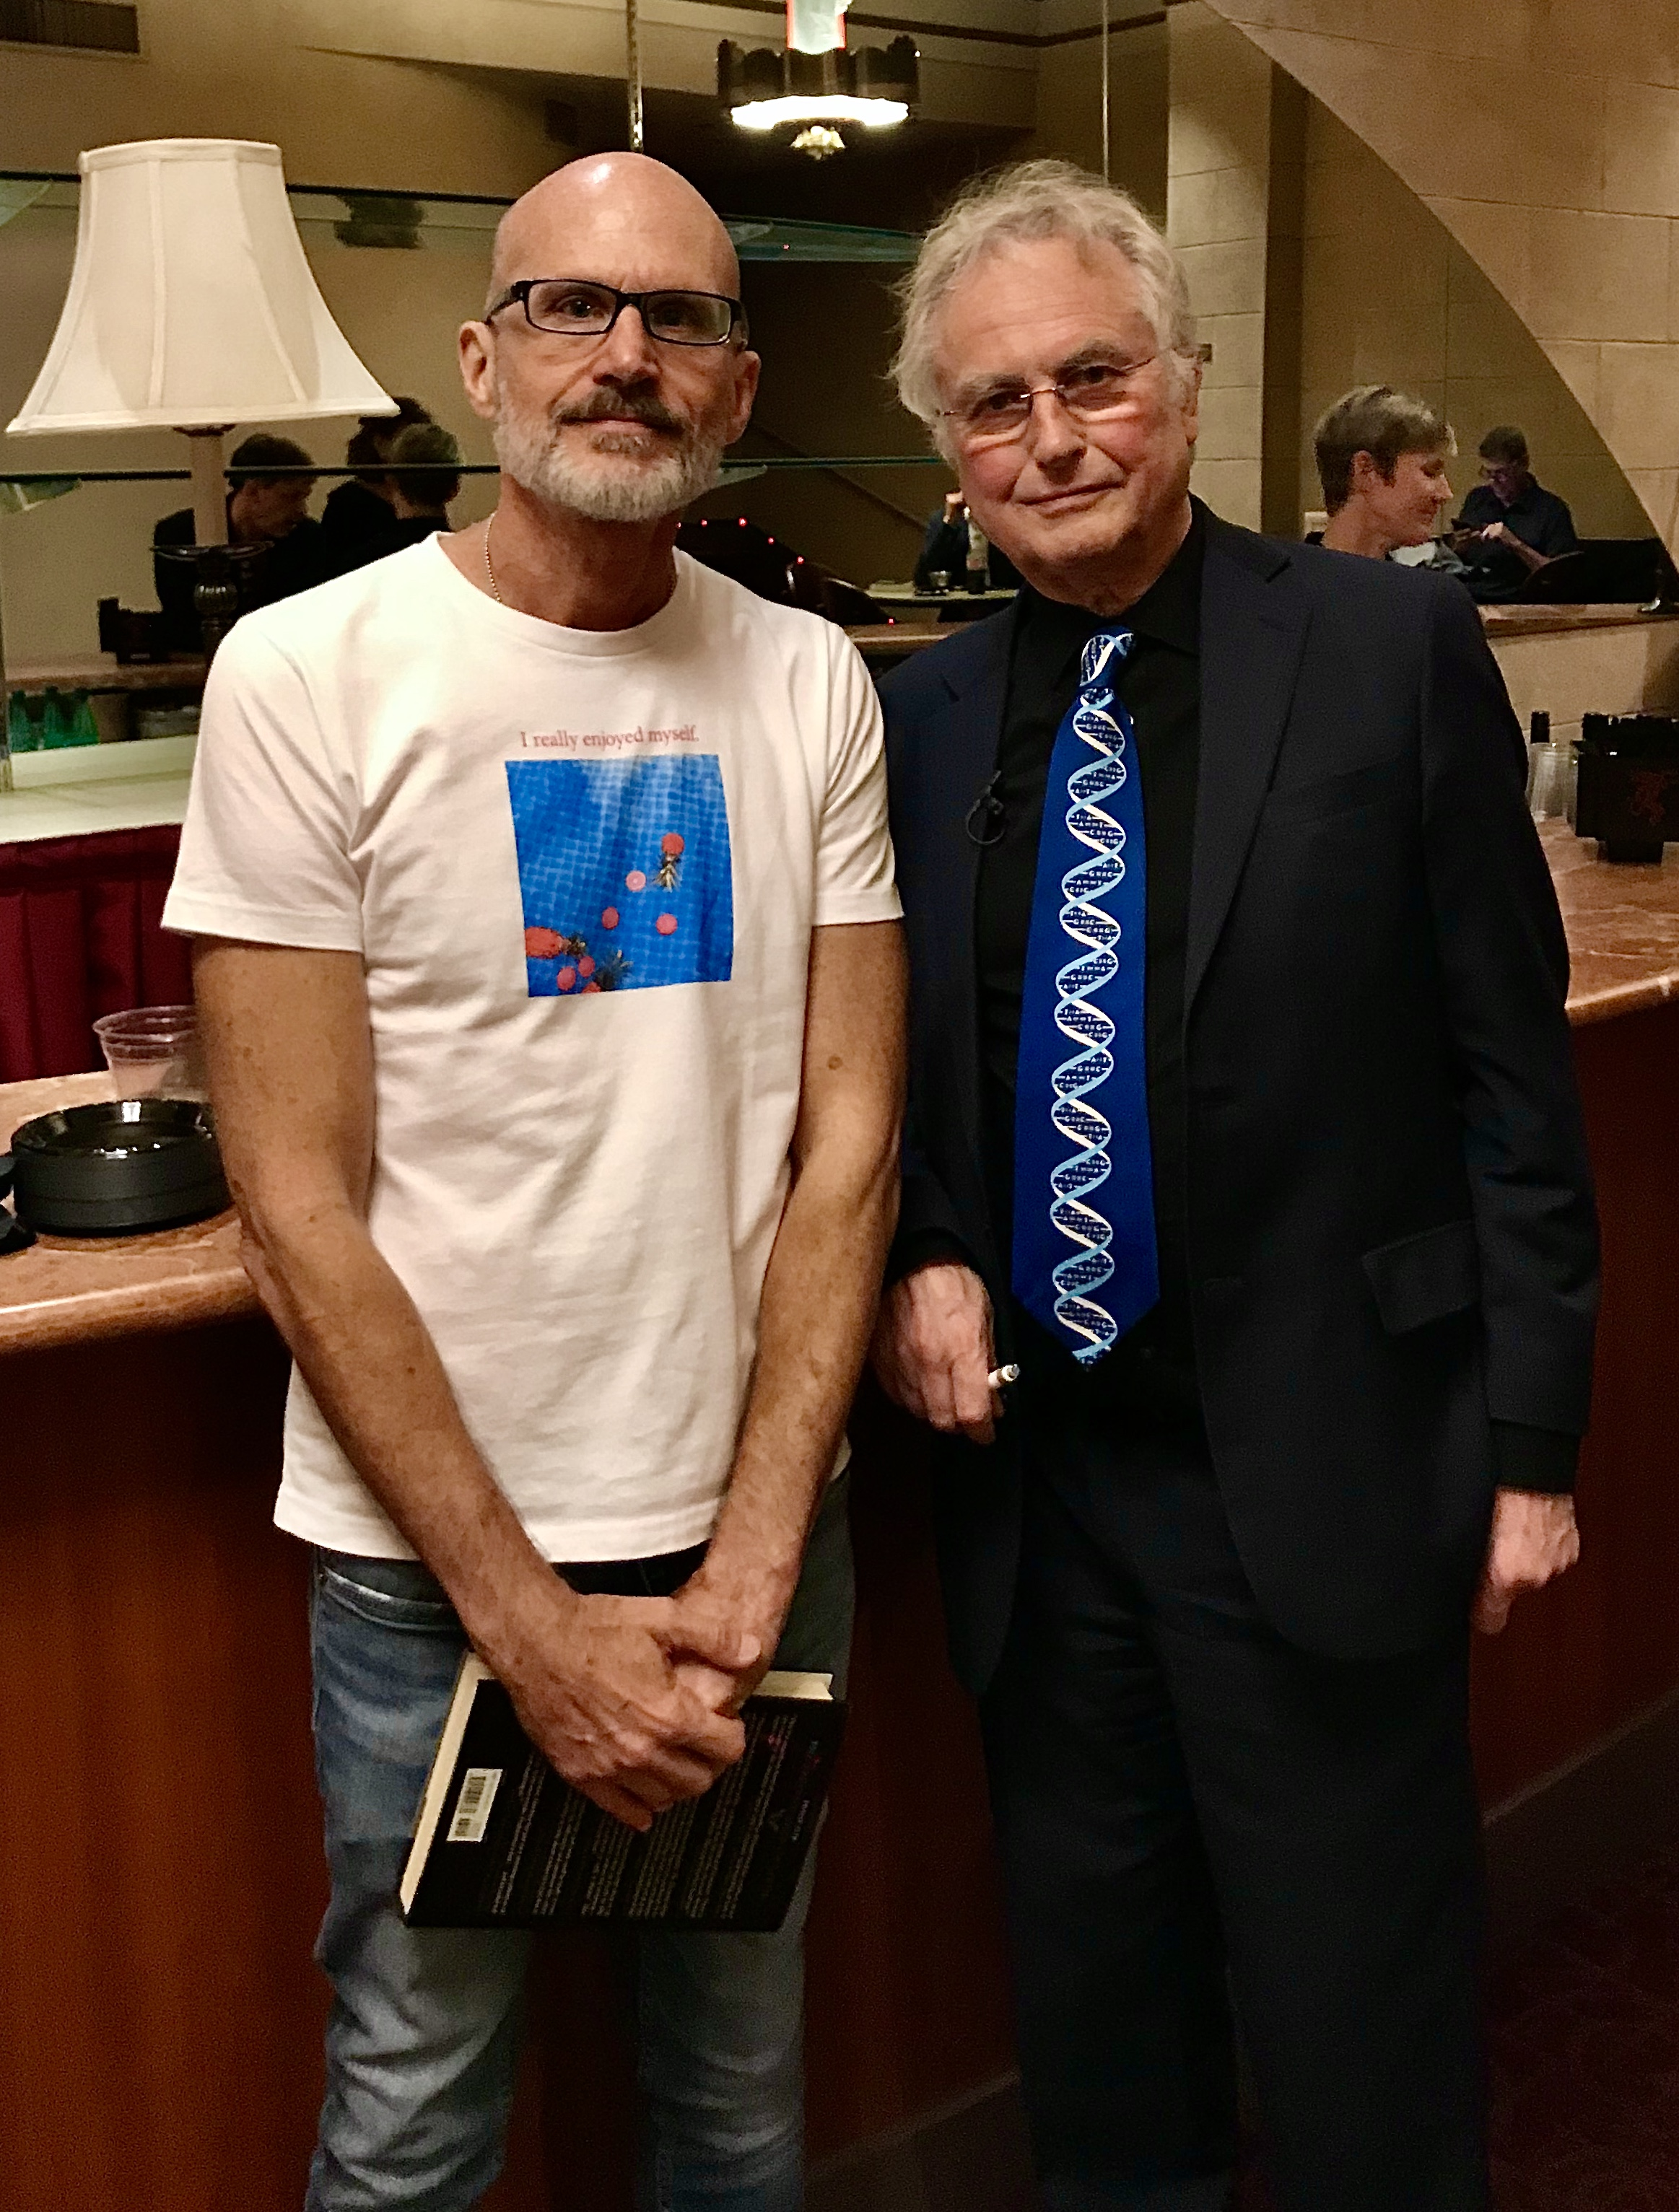 Lee Chapman and Richard Dawkins in Los Angeles 10.20.2019